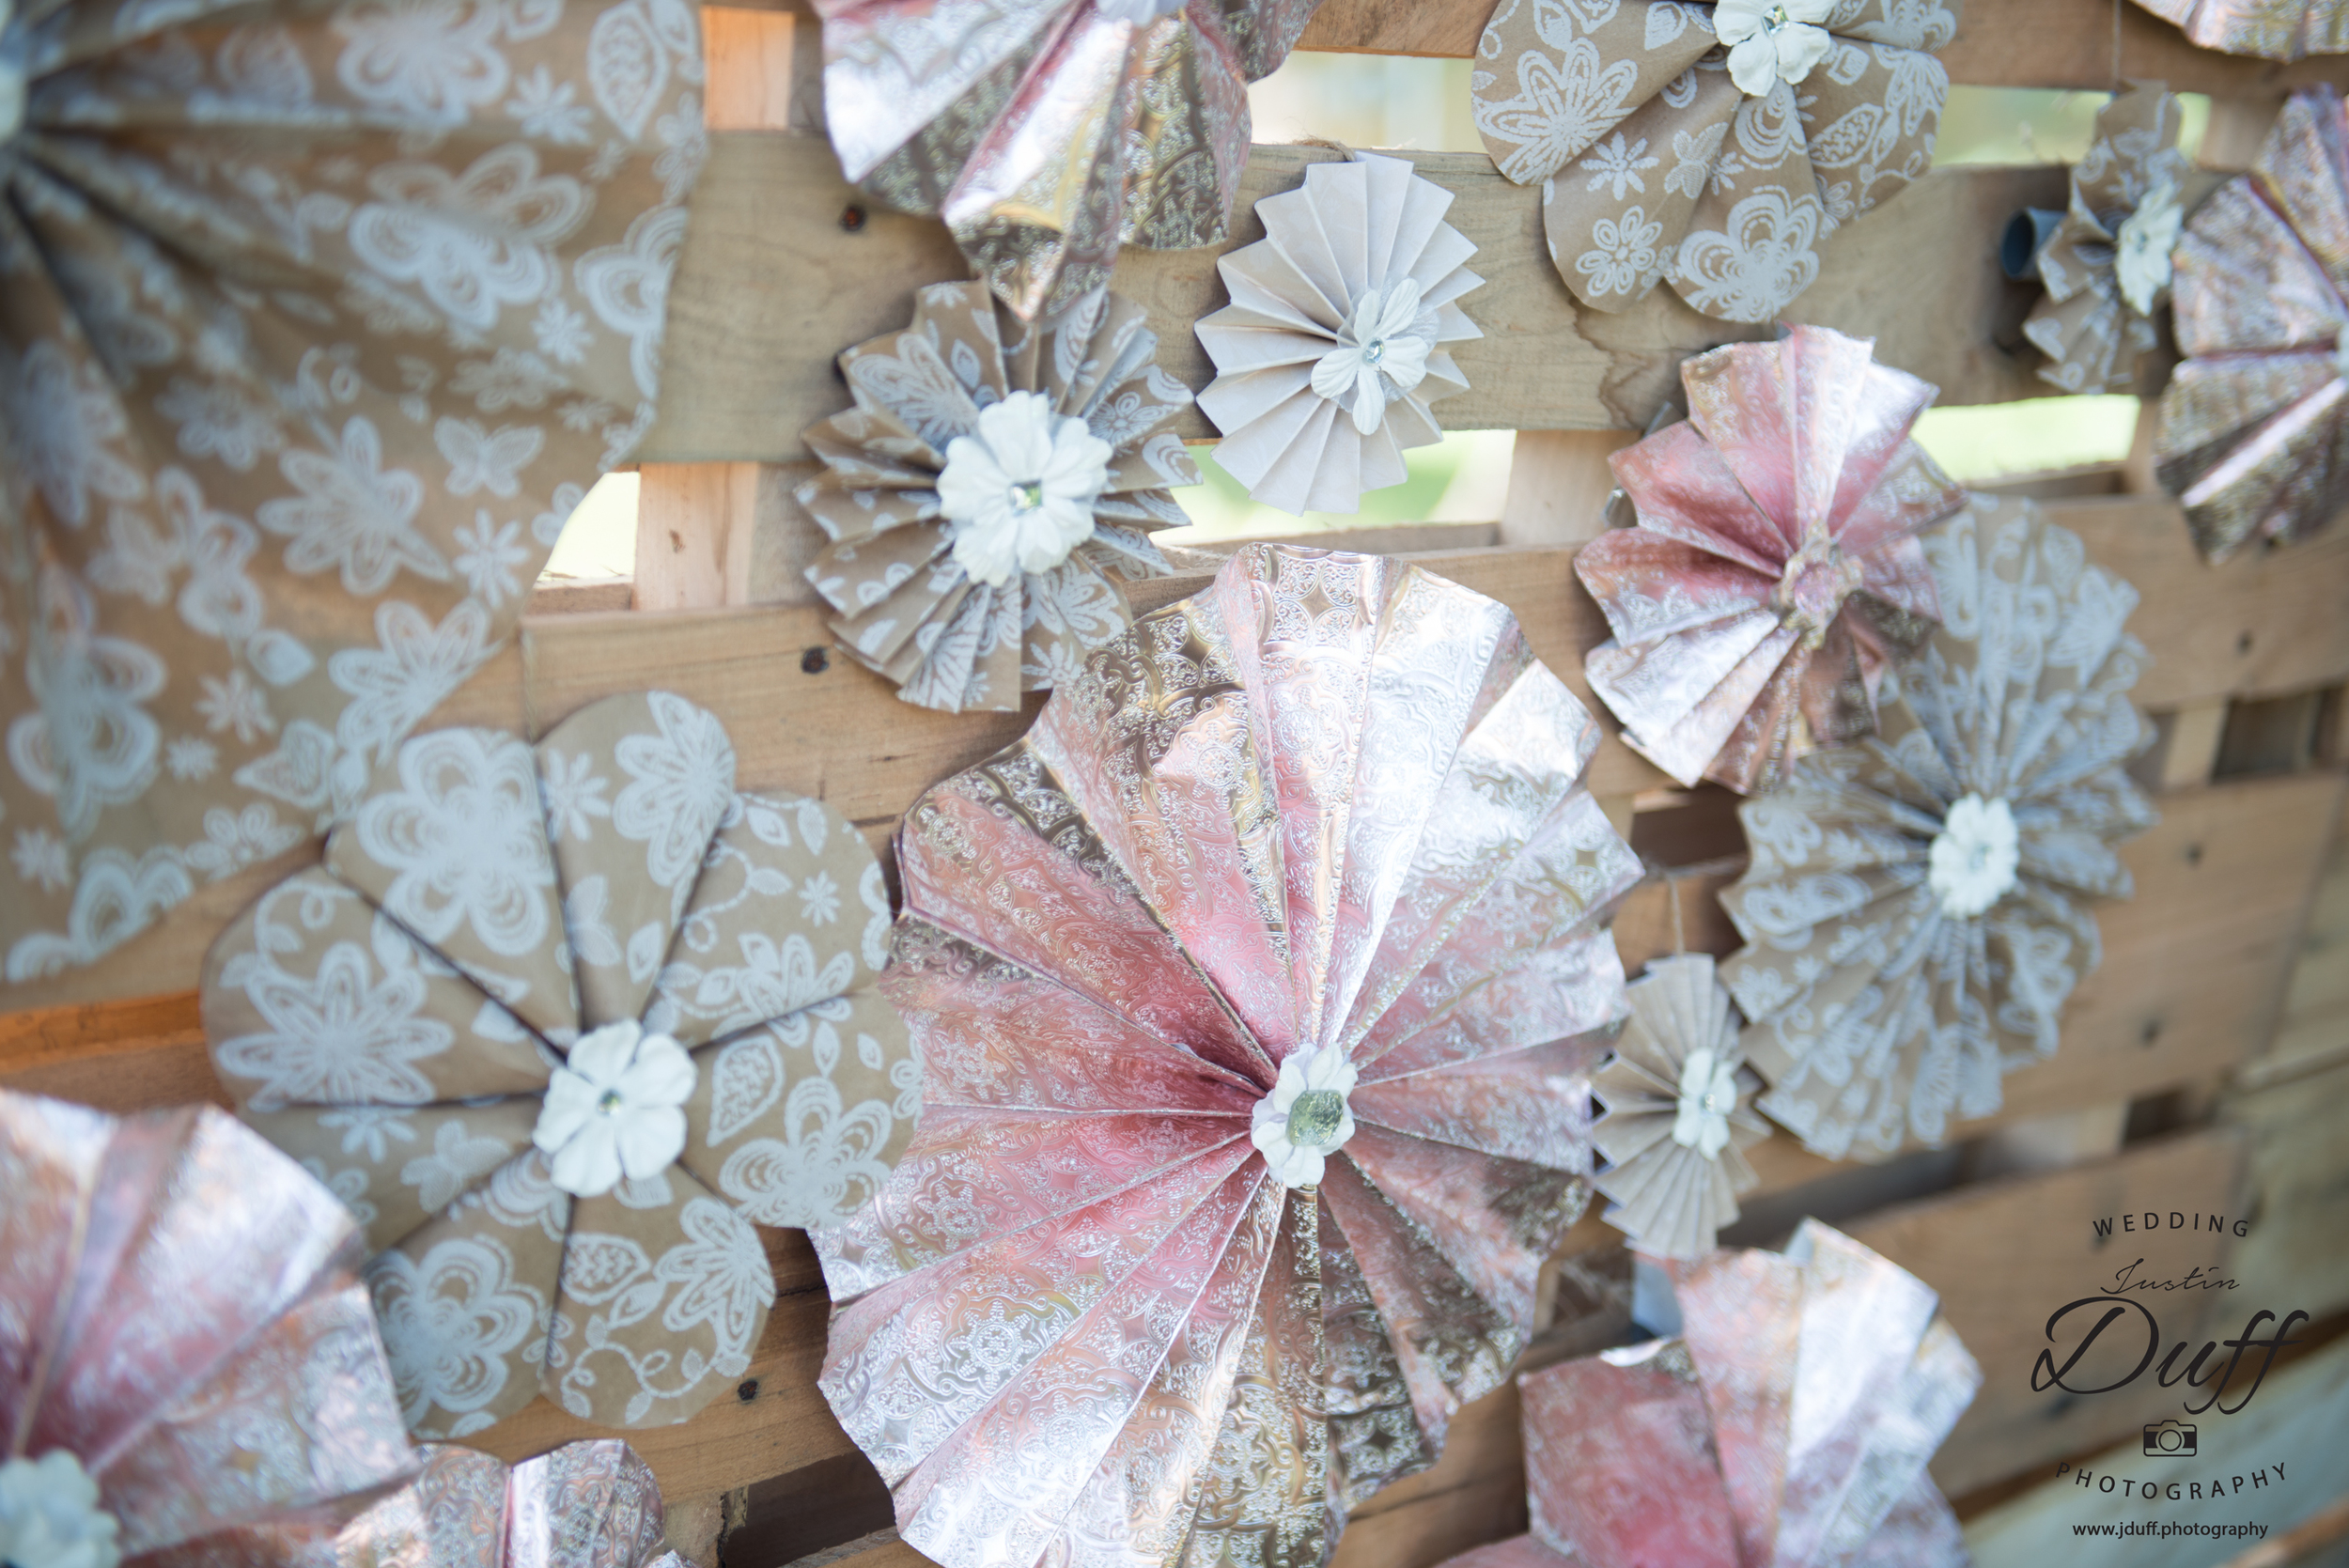 Firefighter Park Wedding - Troy MI wedding photographer. Hand made decorations cicular paper fans on a wooden bacdrop